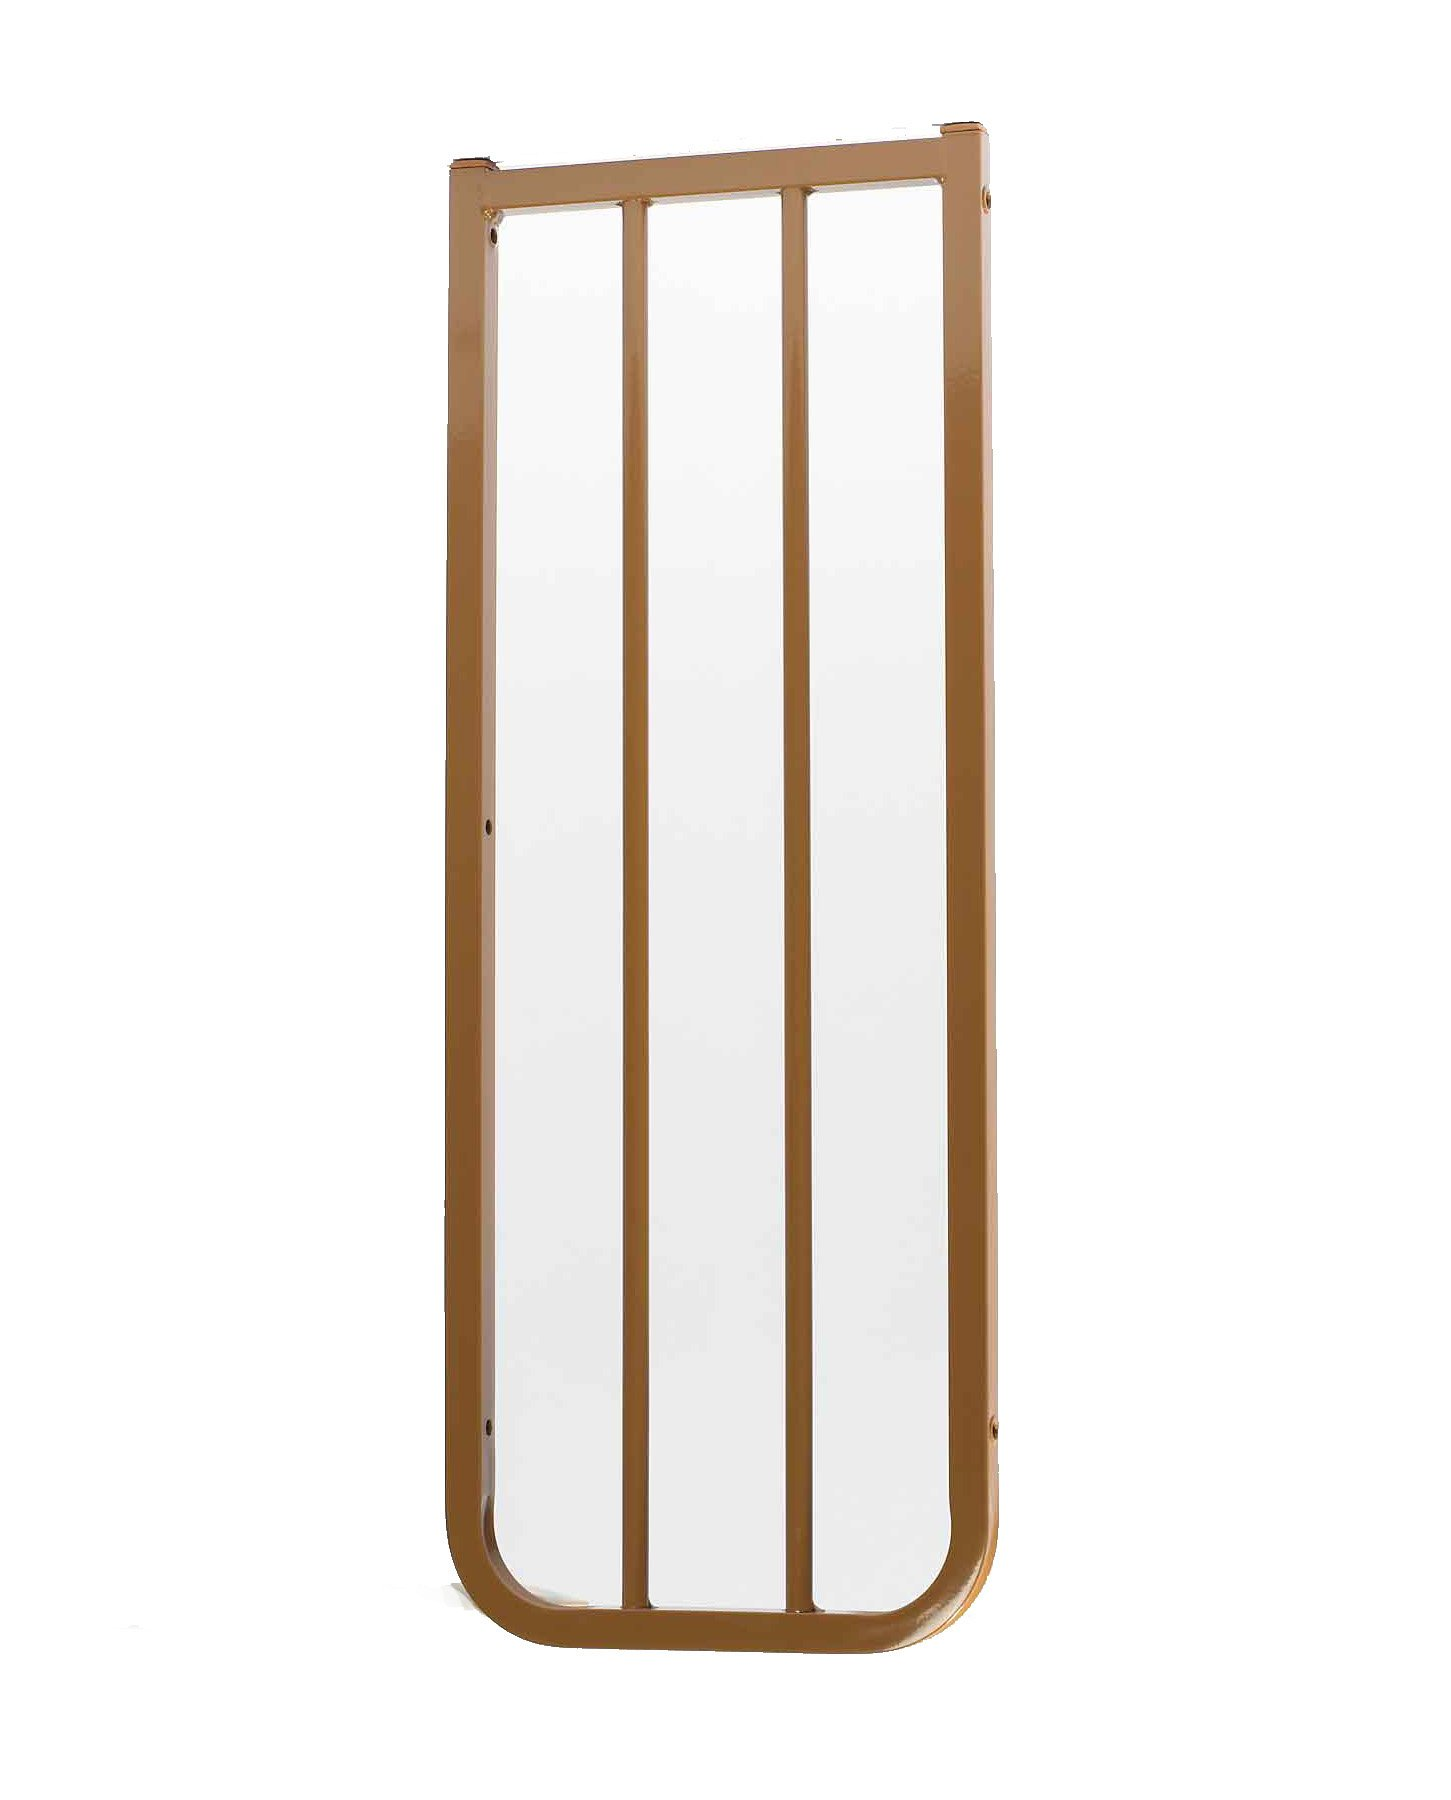 Cardinal Gates Extension for Outdoor Child Safety Gate, Brown, 10.5''